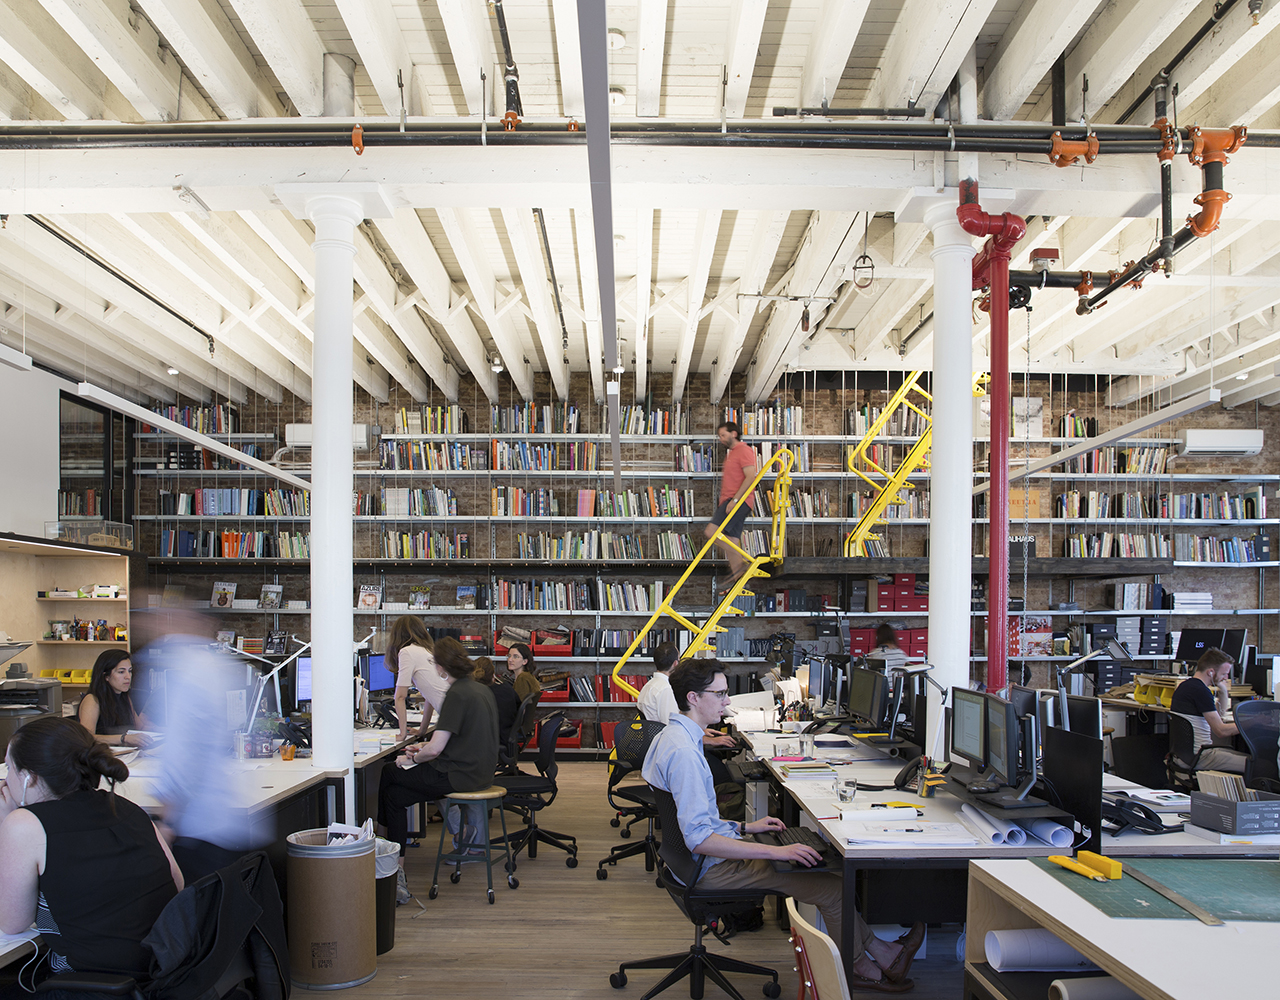 LSS Architecture Is An Award Winning Architectural Studio Inspired By  Innovation In Design, The Craft Of Construction, And A Collaborative  Approach That ... Great Pictures